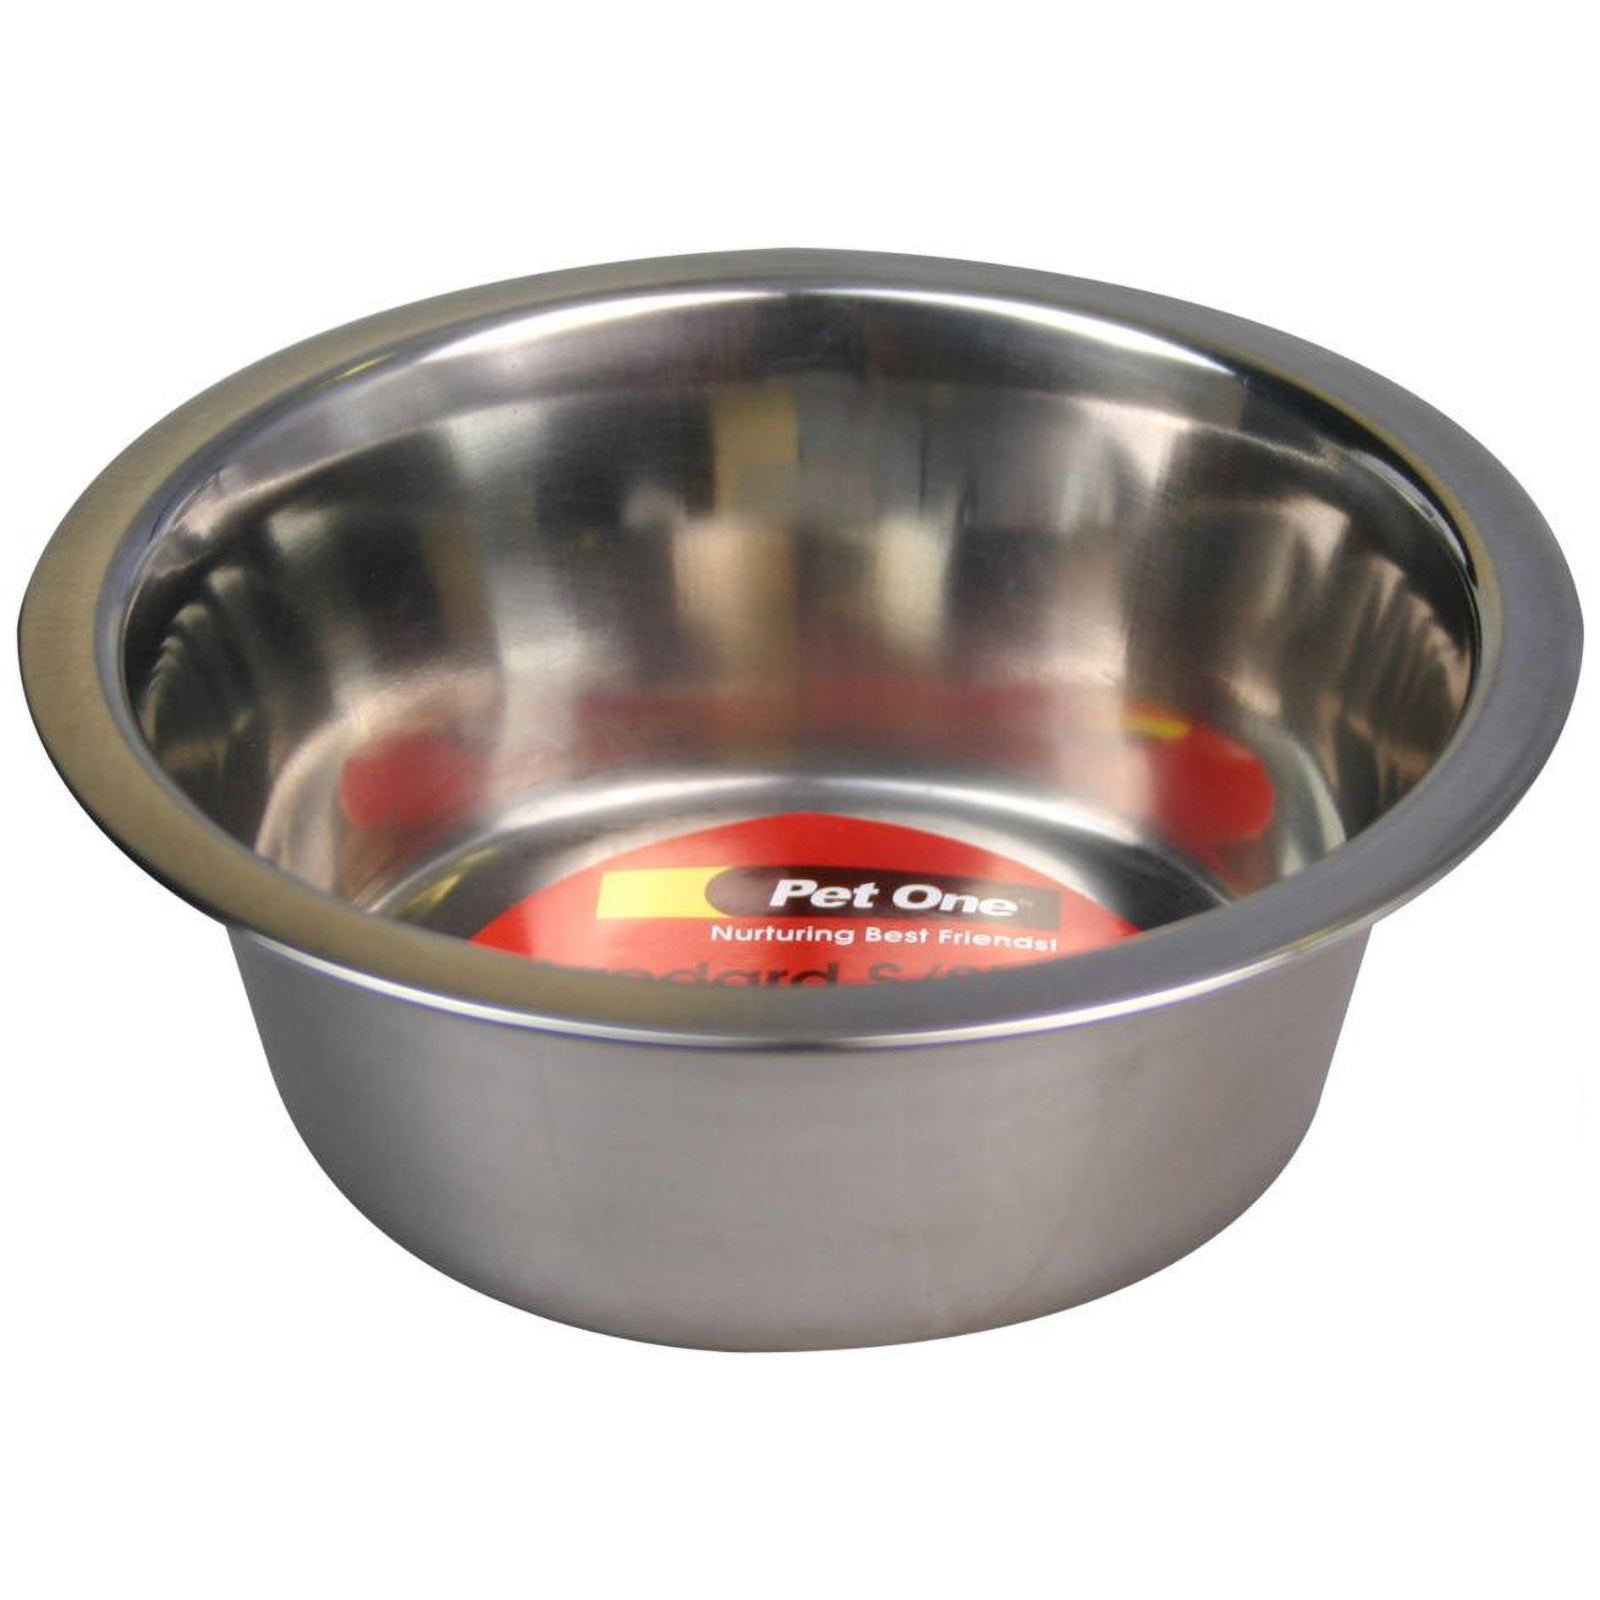 Pet One Stainless Steel Dog Bowl